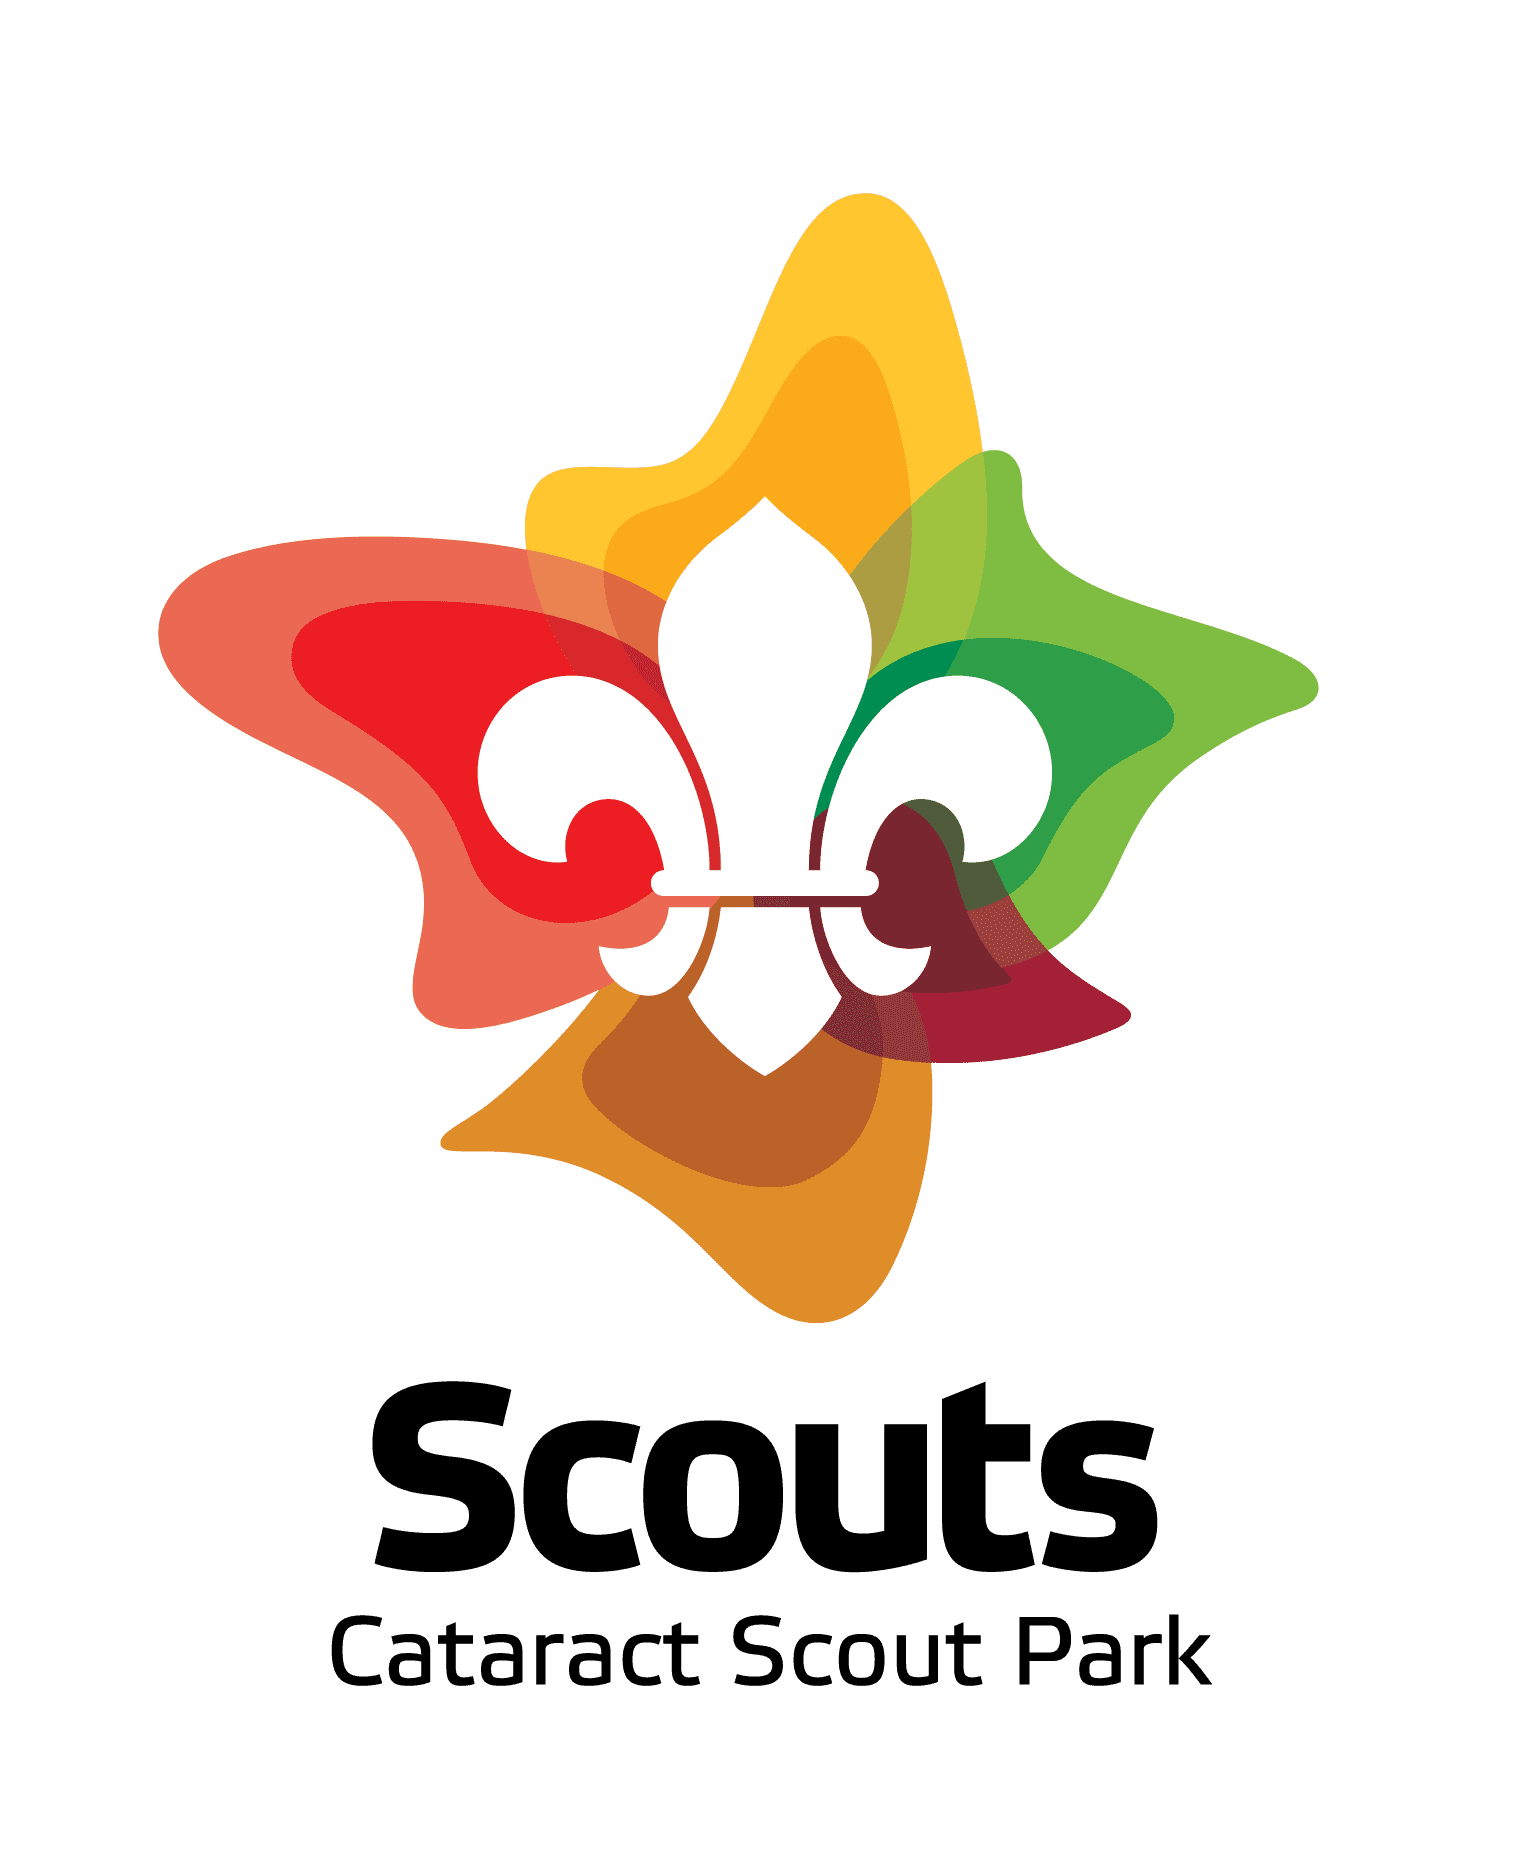 Cataract Scout Park | NSW School Camp and Excursion Venue, Scout Camps, Corporate Retreats and Community Group Events